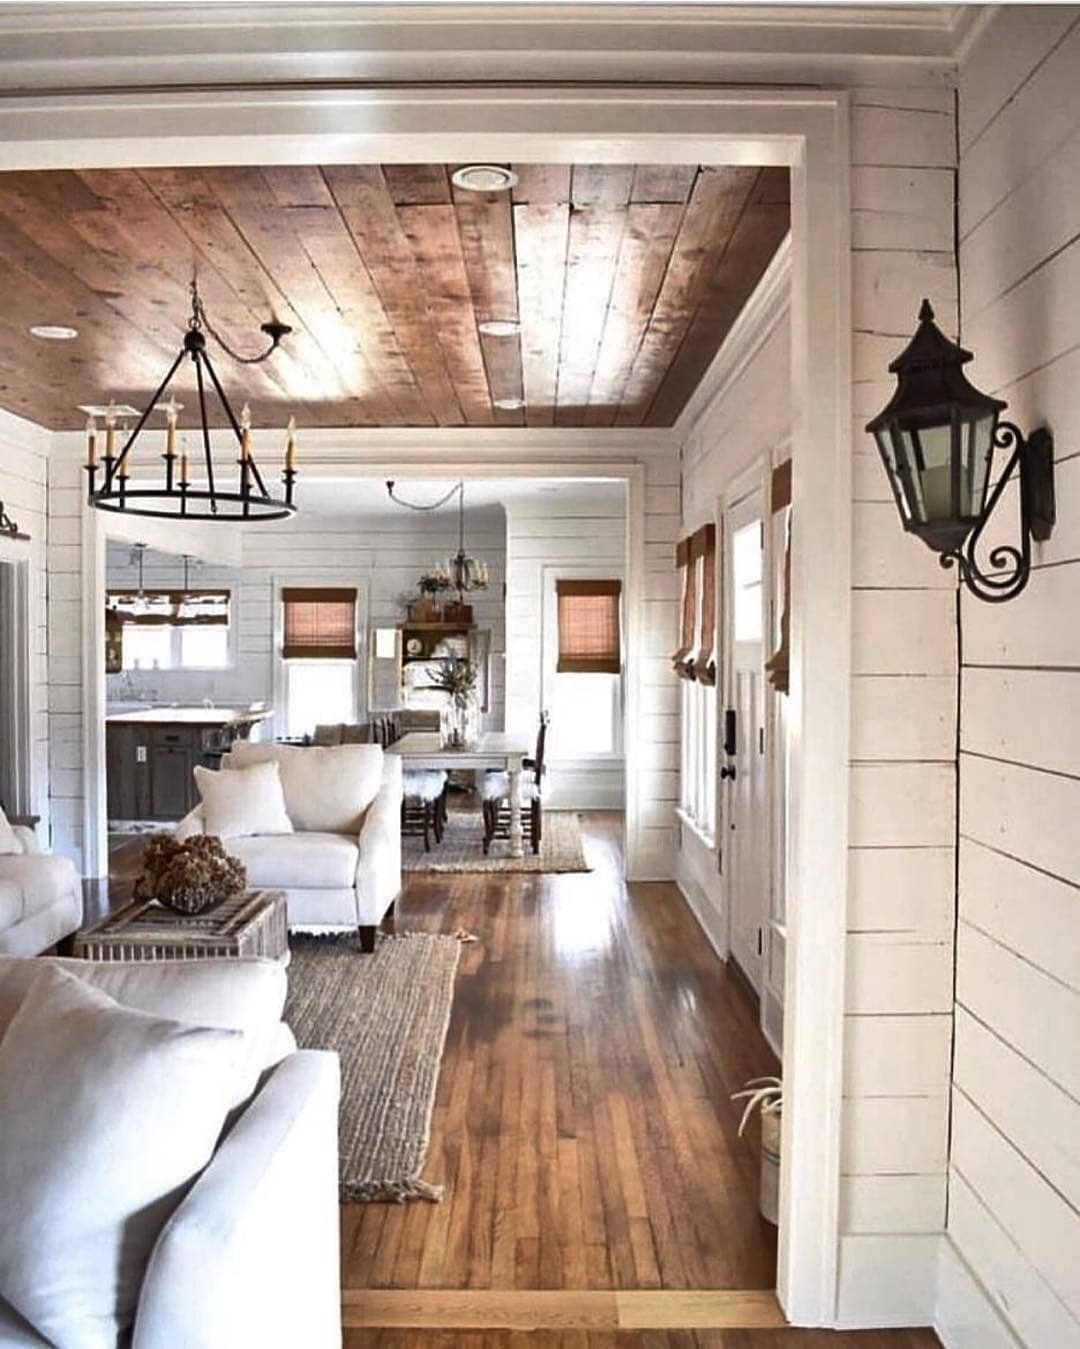 Farmhouse Only On Instagram Follow Us Farmhouse Only For More Daily Interior Inspo Our Te Farm House Living Room Farmhouse Style Living Room New Homes